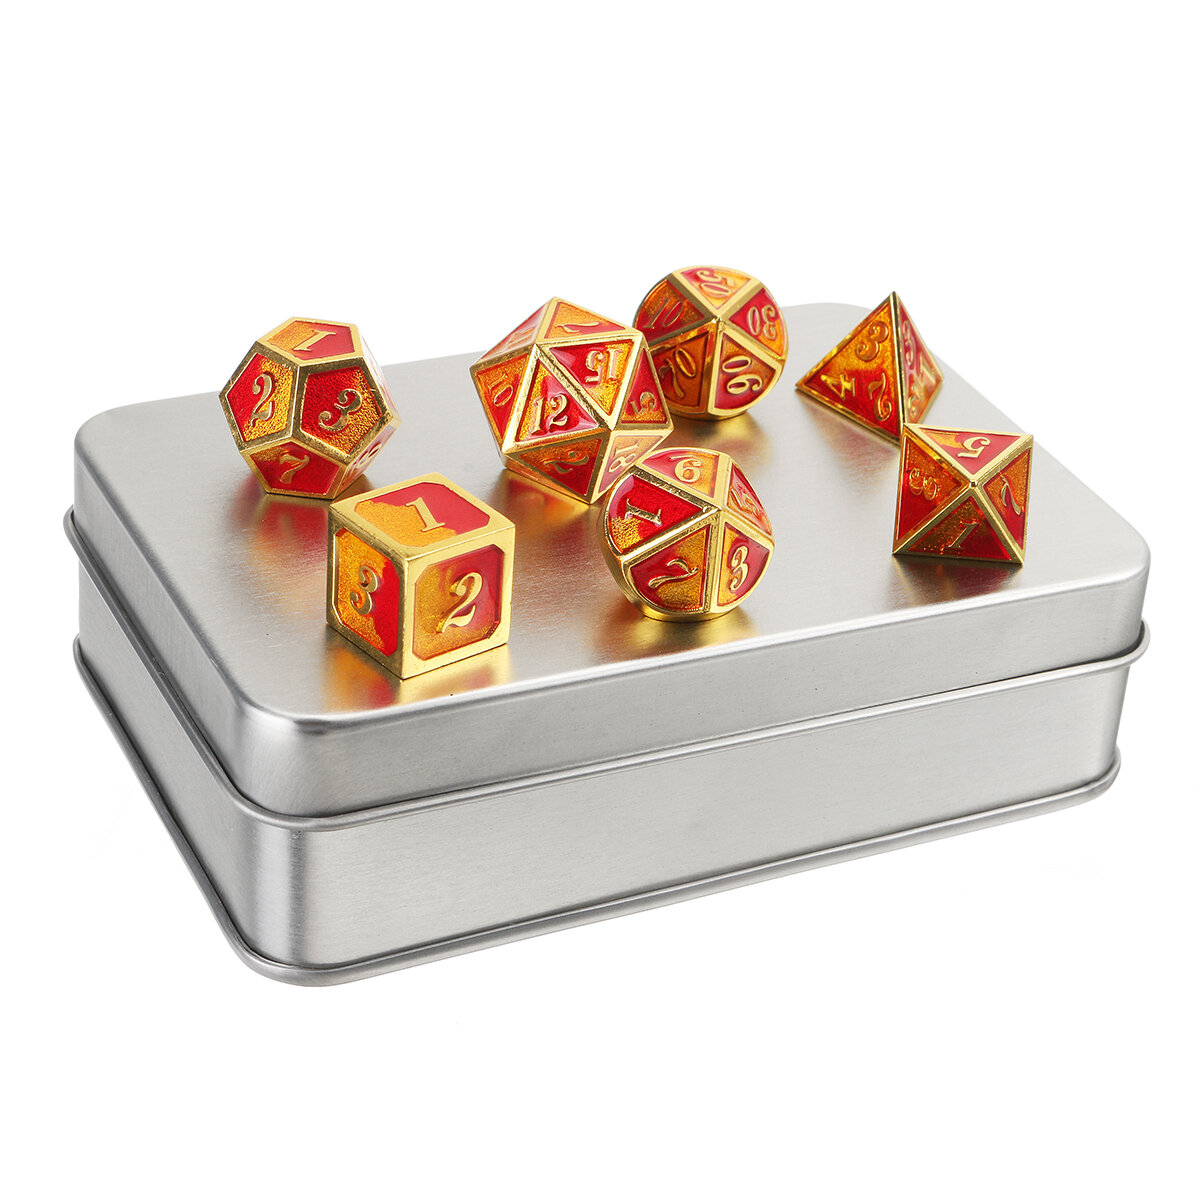 7PCS/SET Creative Metal Multi-faced Dice Set Heavy Duty Polyhedral Dices Role Playing Game Party Game Dice W/ Case